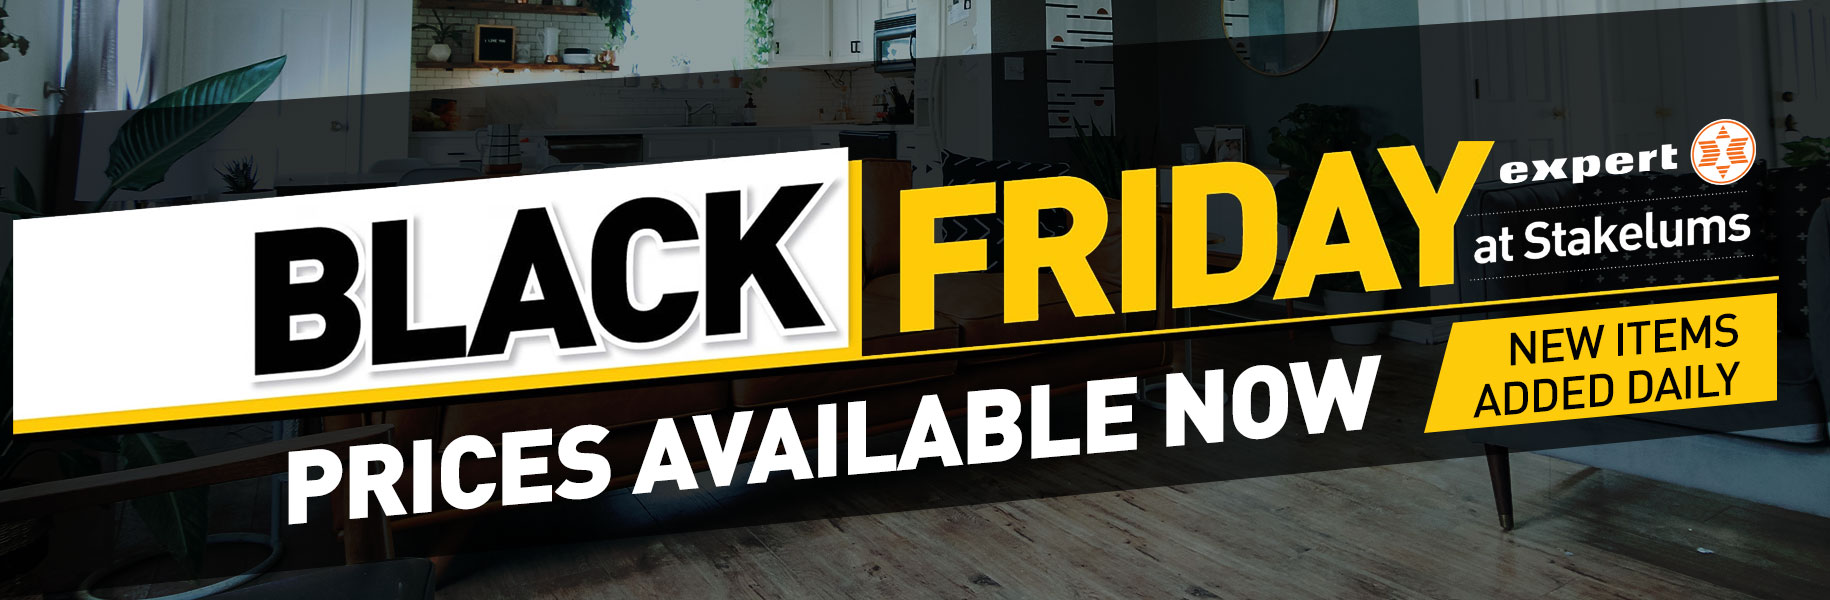 Black Friday Prices Available Now